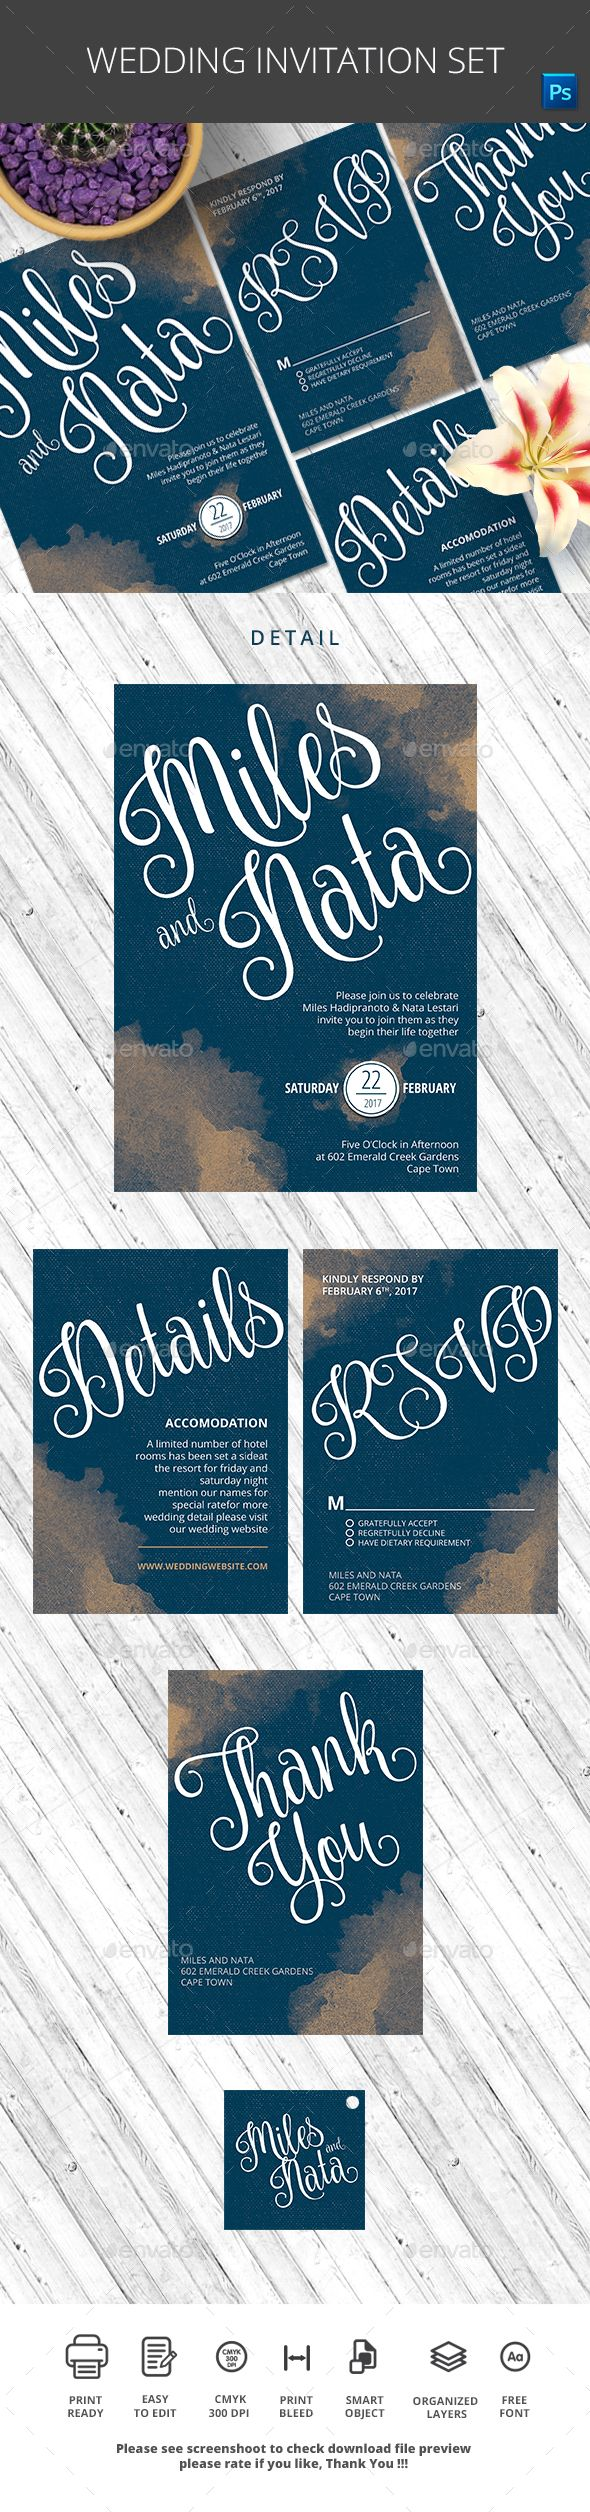 25 best images about Card Invitation Template Design on – Emerald Flyer Template